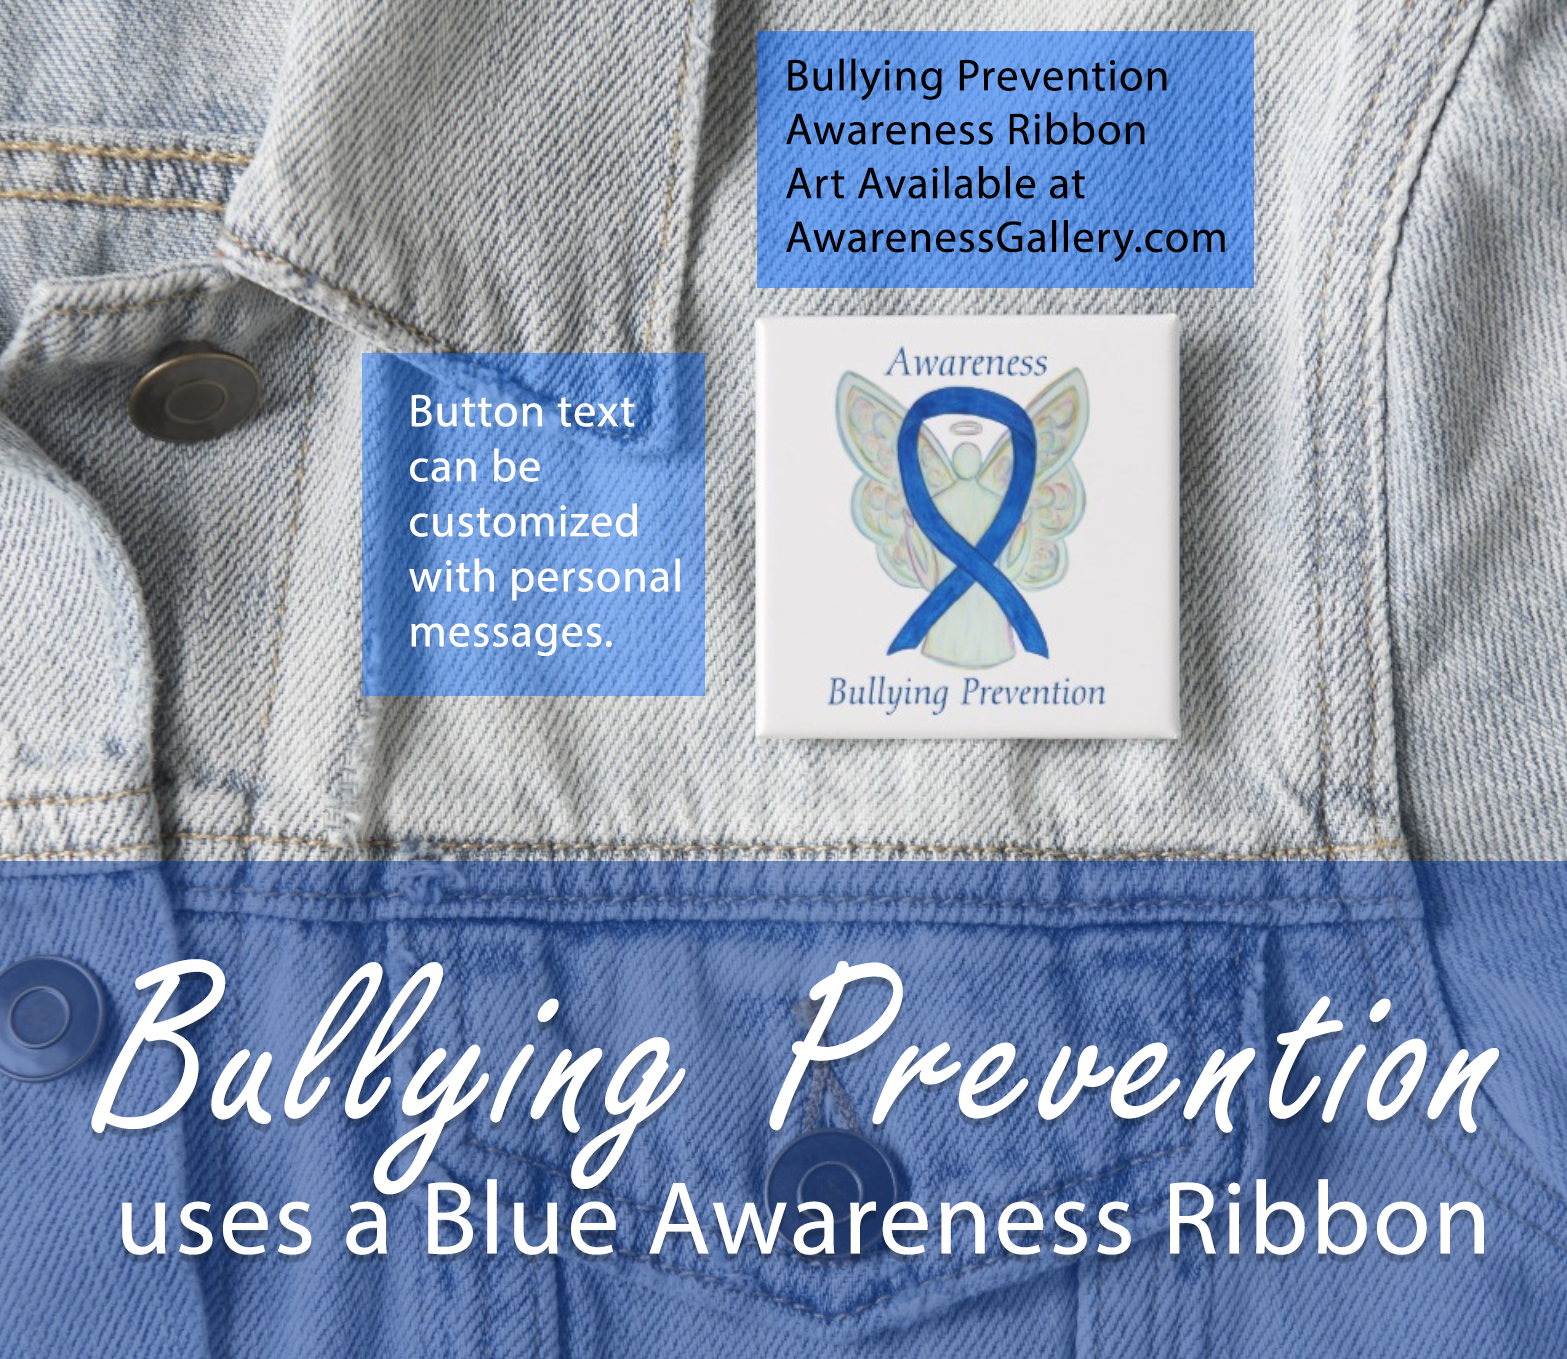 Bullying Prevention Awareness Ribbon Custom Merchandise for Sale